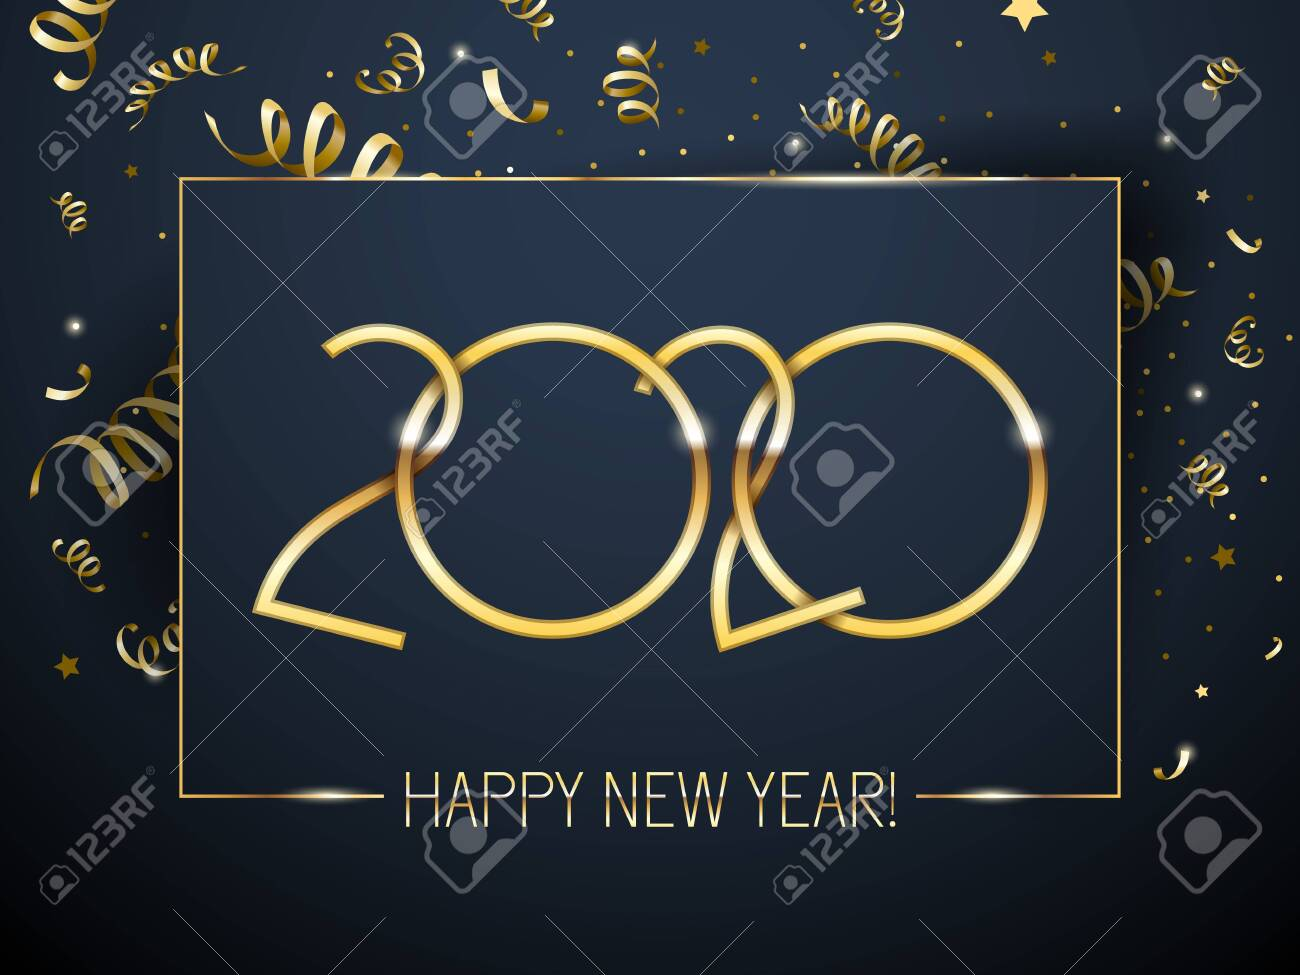 2020 Happy New Year background with golden number and serpentine. Christmas winter holidays design. Seasonal greeting card, calendar, brochure template. - 124007647